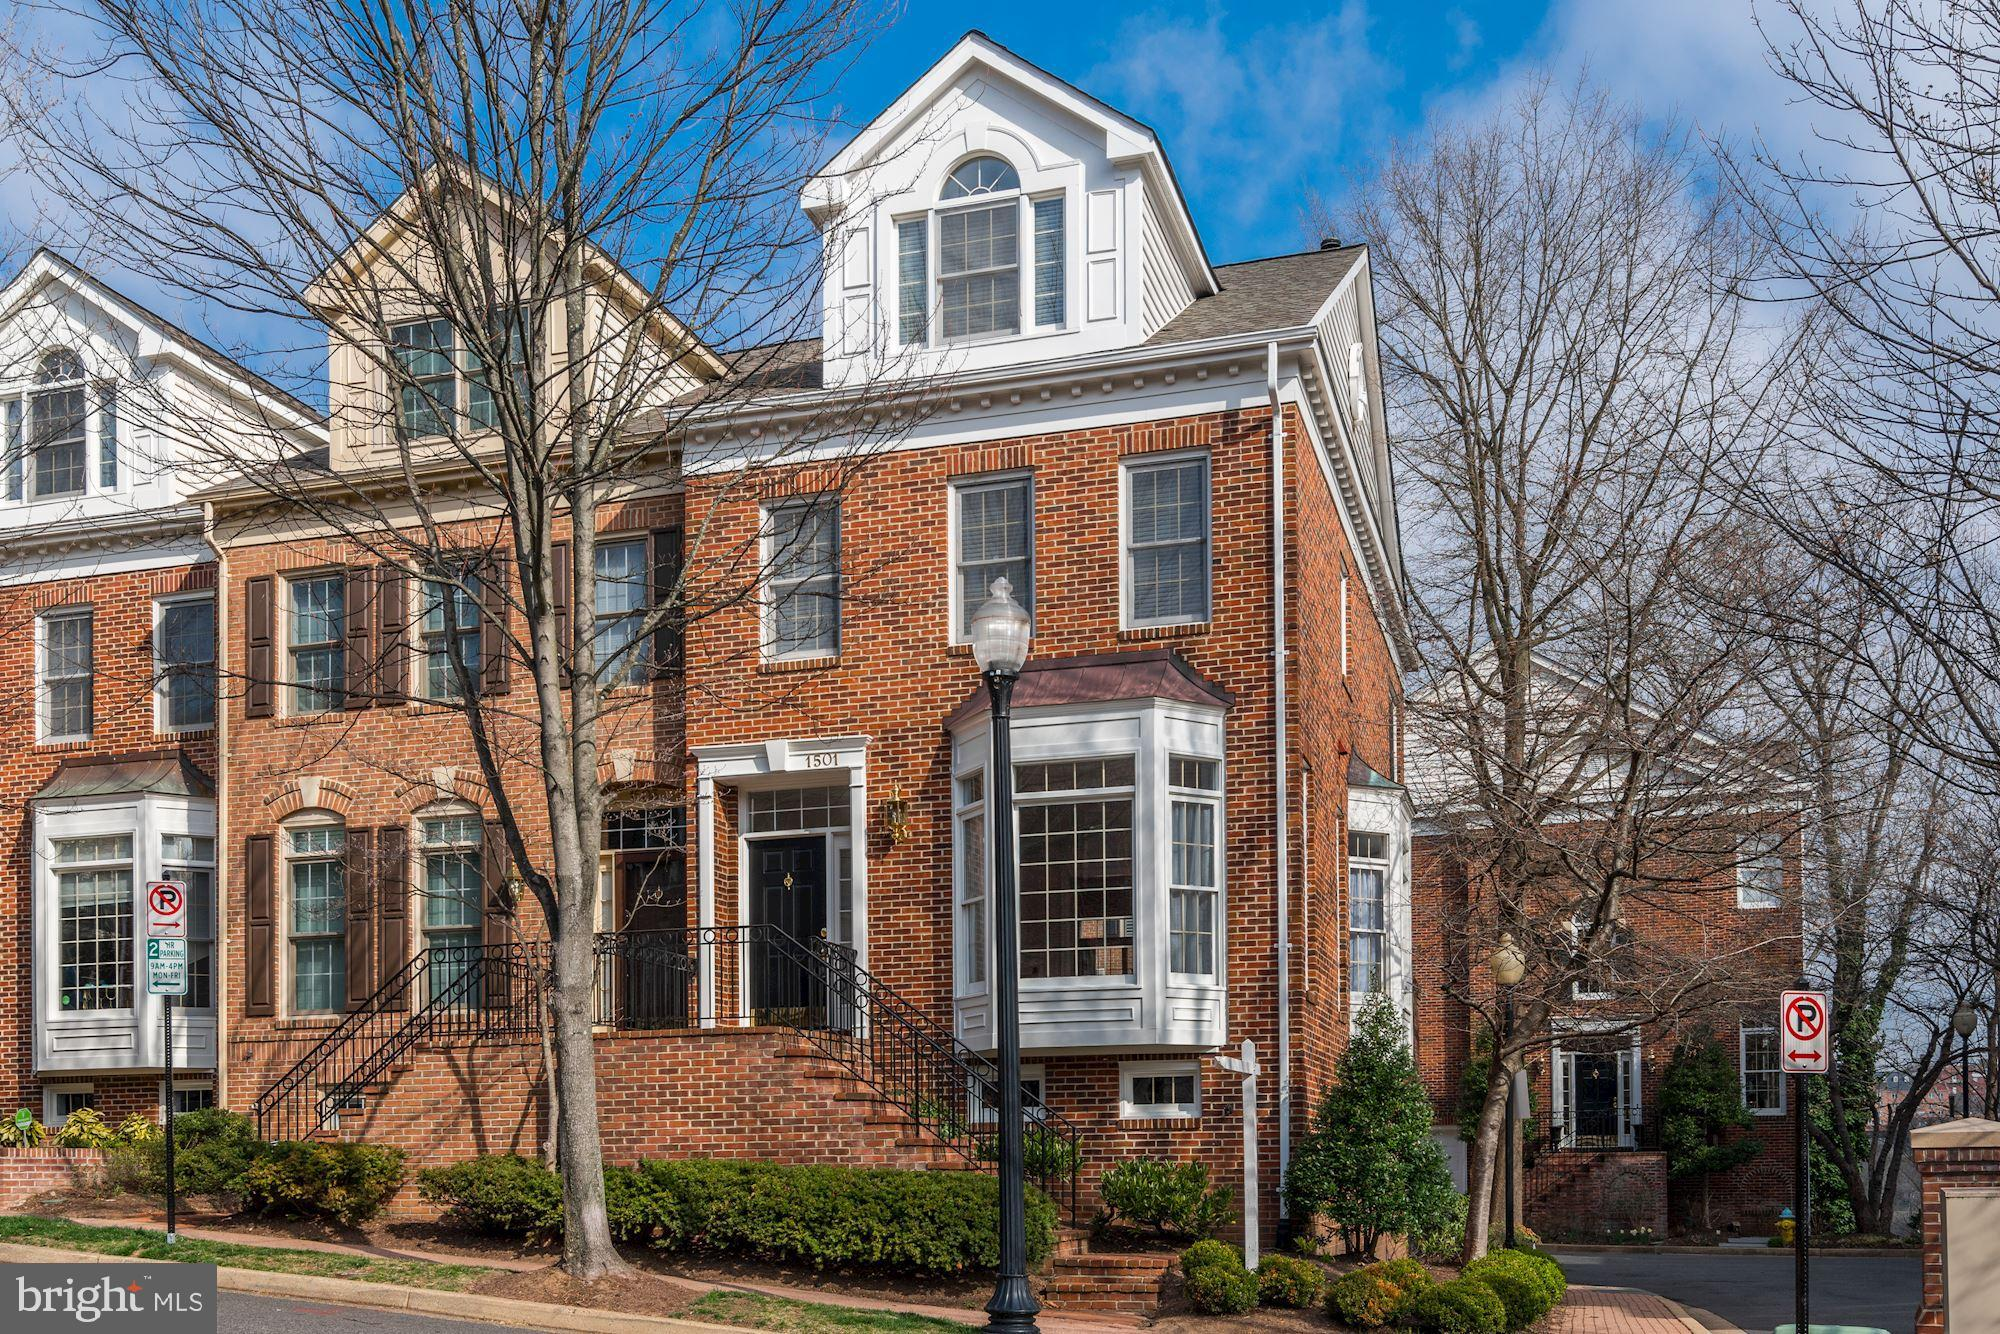 1501 22ND STREET N, ARLINGTON, VA 22209